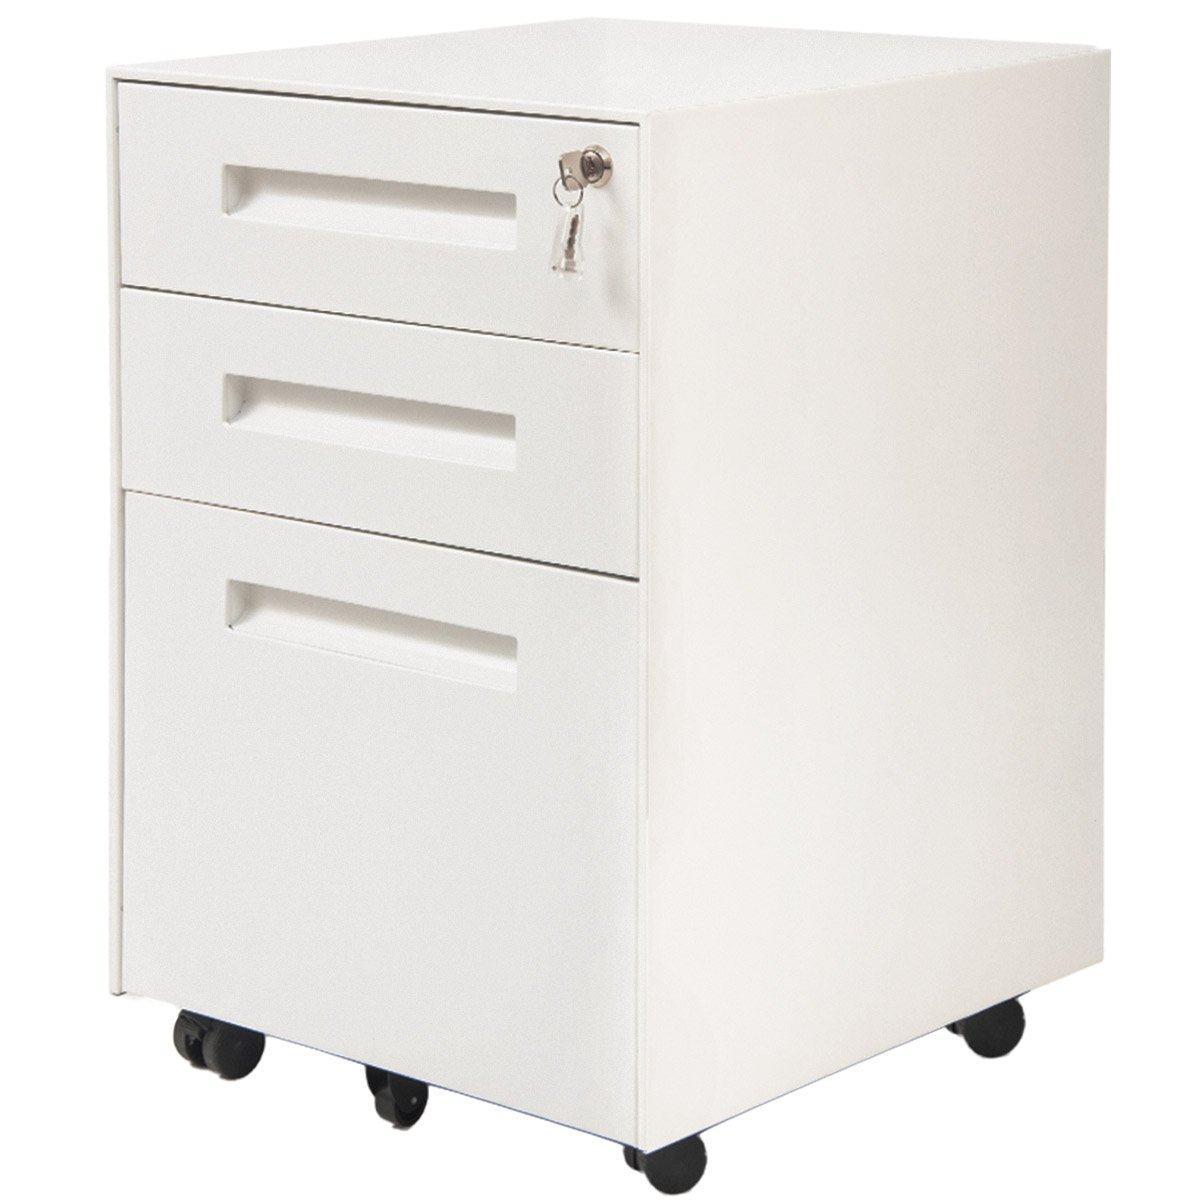 ModernLuxe 3-Drawer Metal Mobile File Cabinet with Lock Fully Assembled Except Casters (Black) LZH MX037849